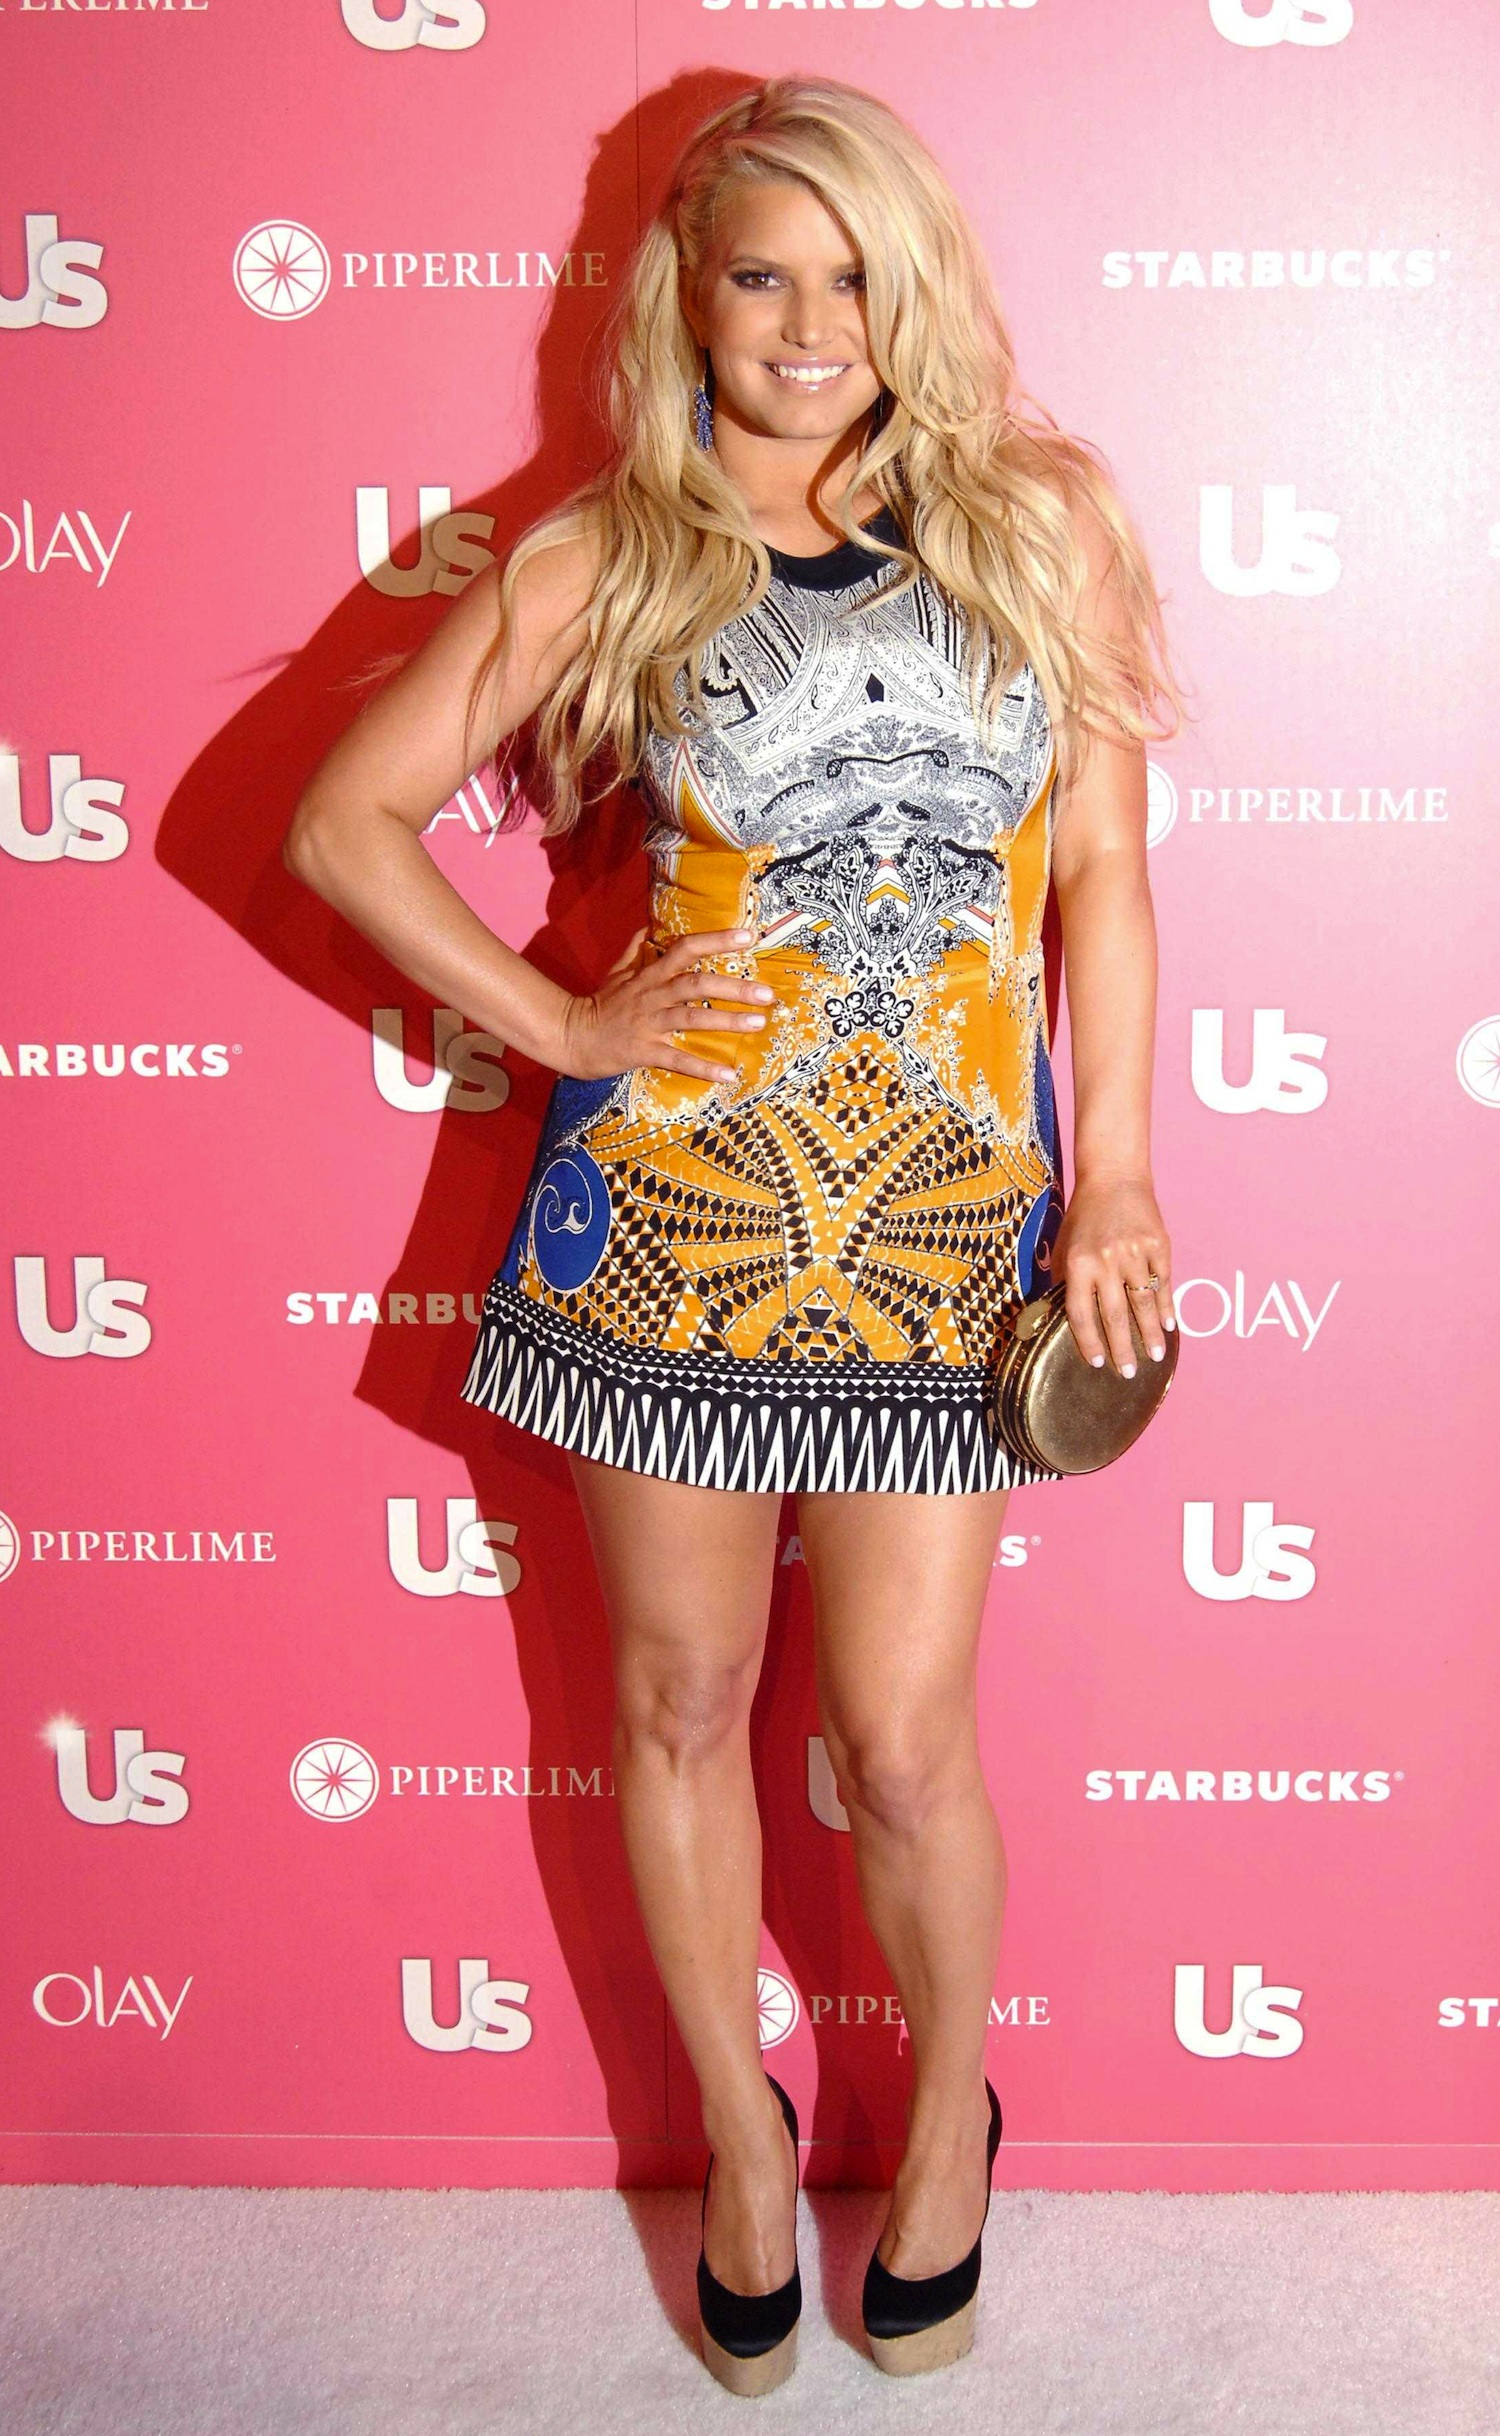 Jessica Simpson: Nailed it. This beautiful mom-to-be's foray into fashion has been a massive hit. I mean, have you seen the shoes?! Plus her new jeans line flew off shelves last year, which makes her one of the most successful celebrity designers in history.